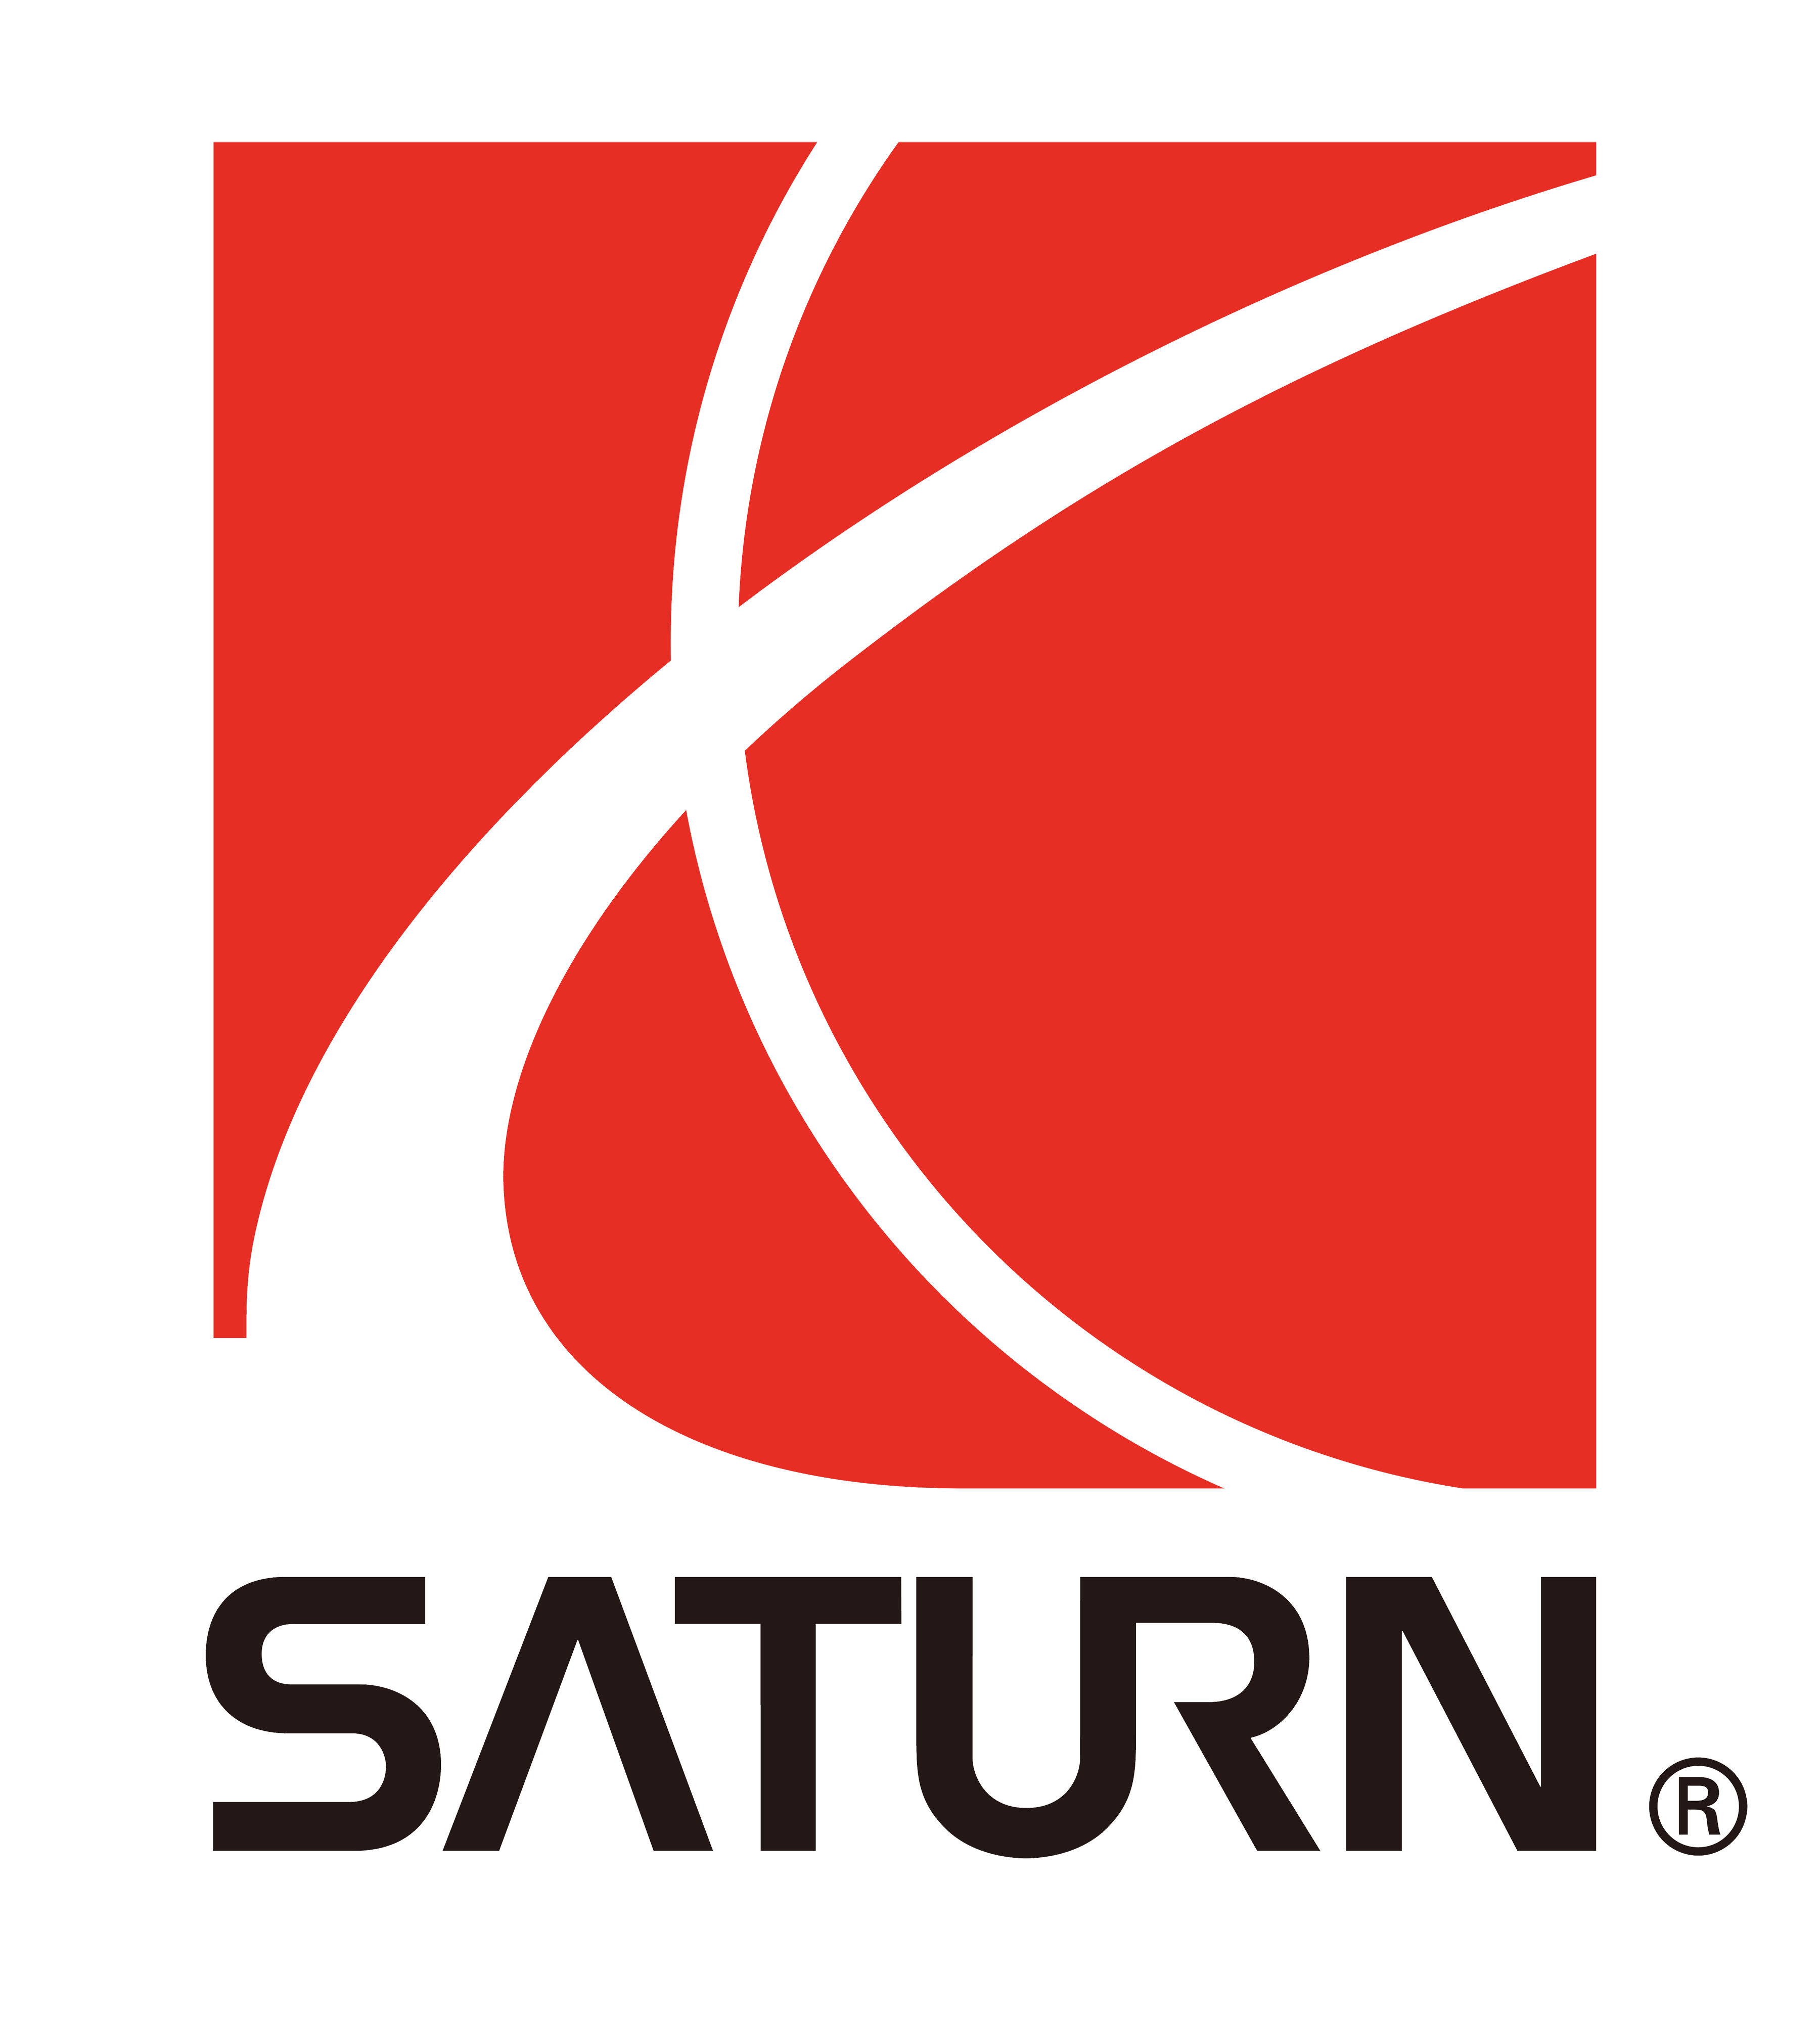 Saturn logo hd png meaning information carlogos saturn symbol red 3600x4000 hd png buycottarizona Image collections